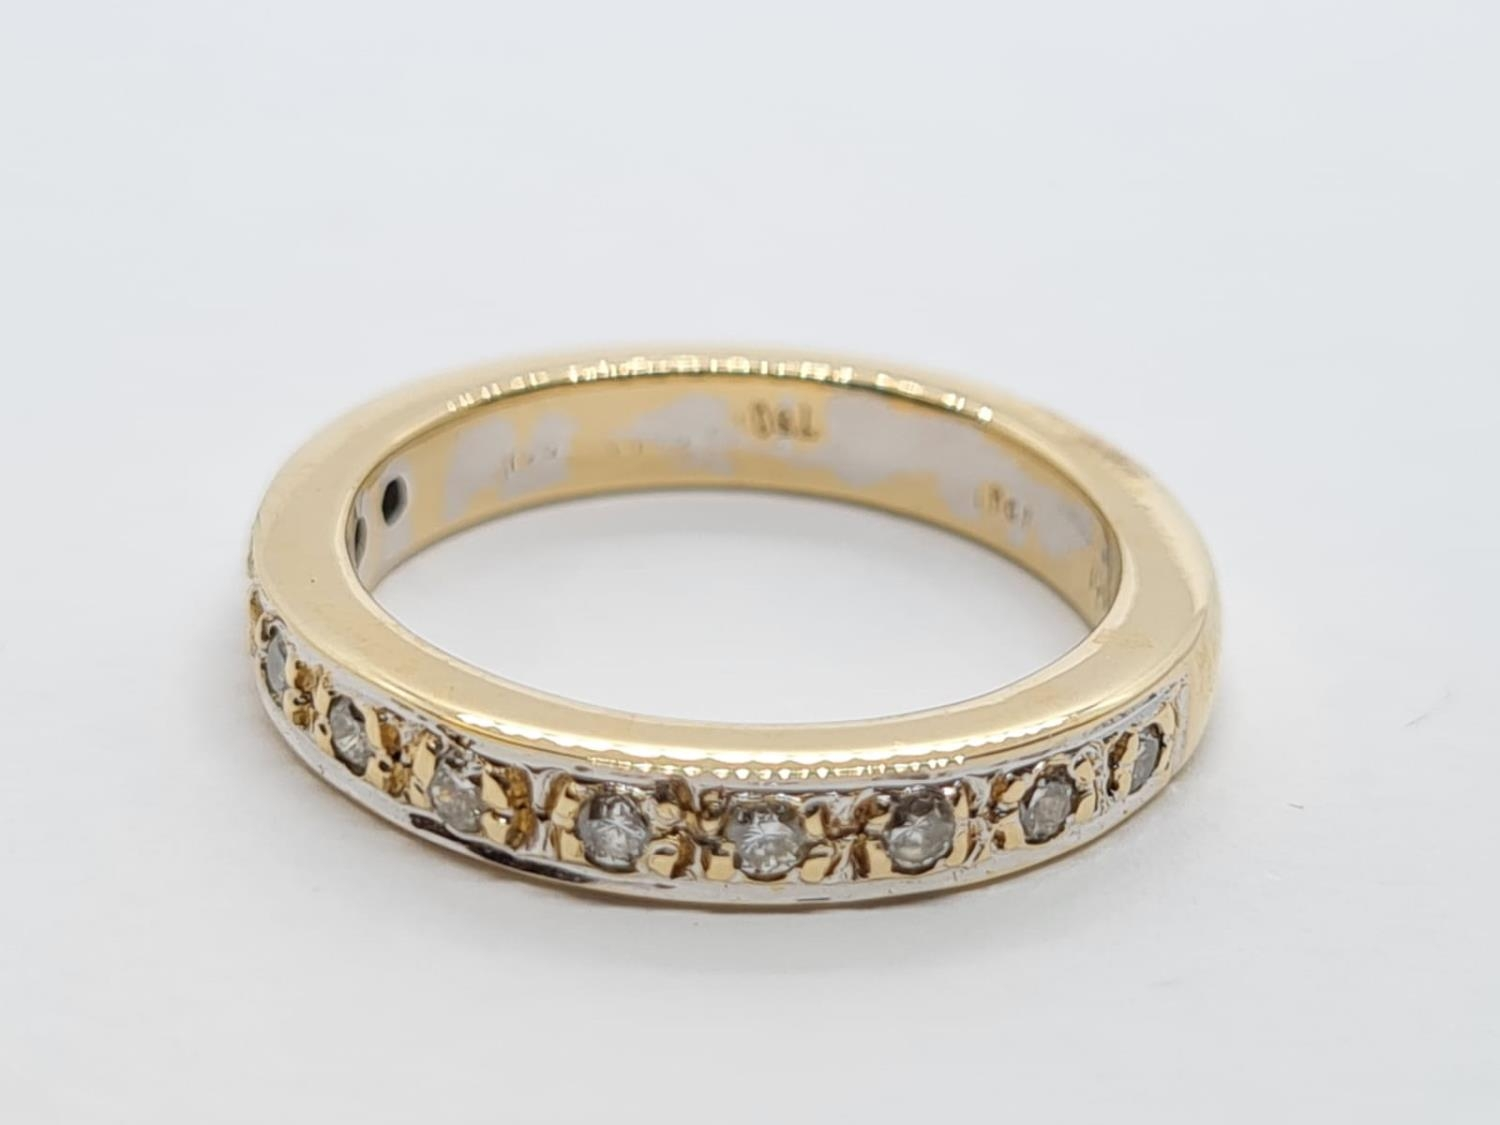 18ct Gold and Diamond Eternity RING. 5.2g Size K/L - Image 2 of 3